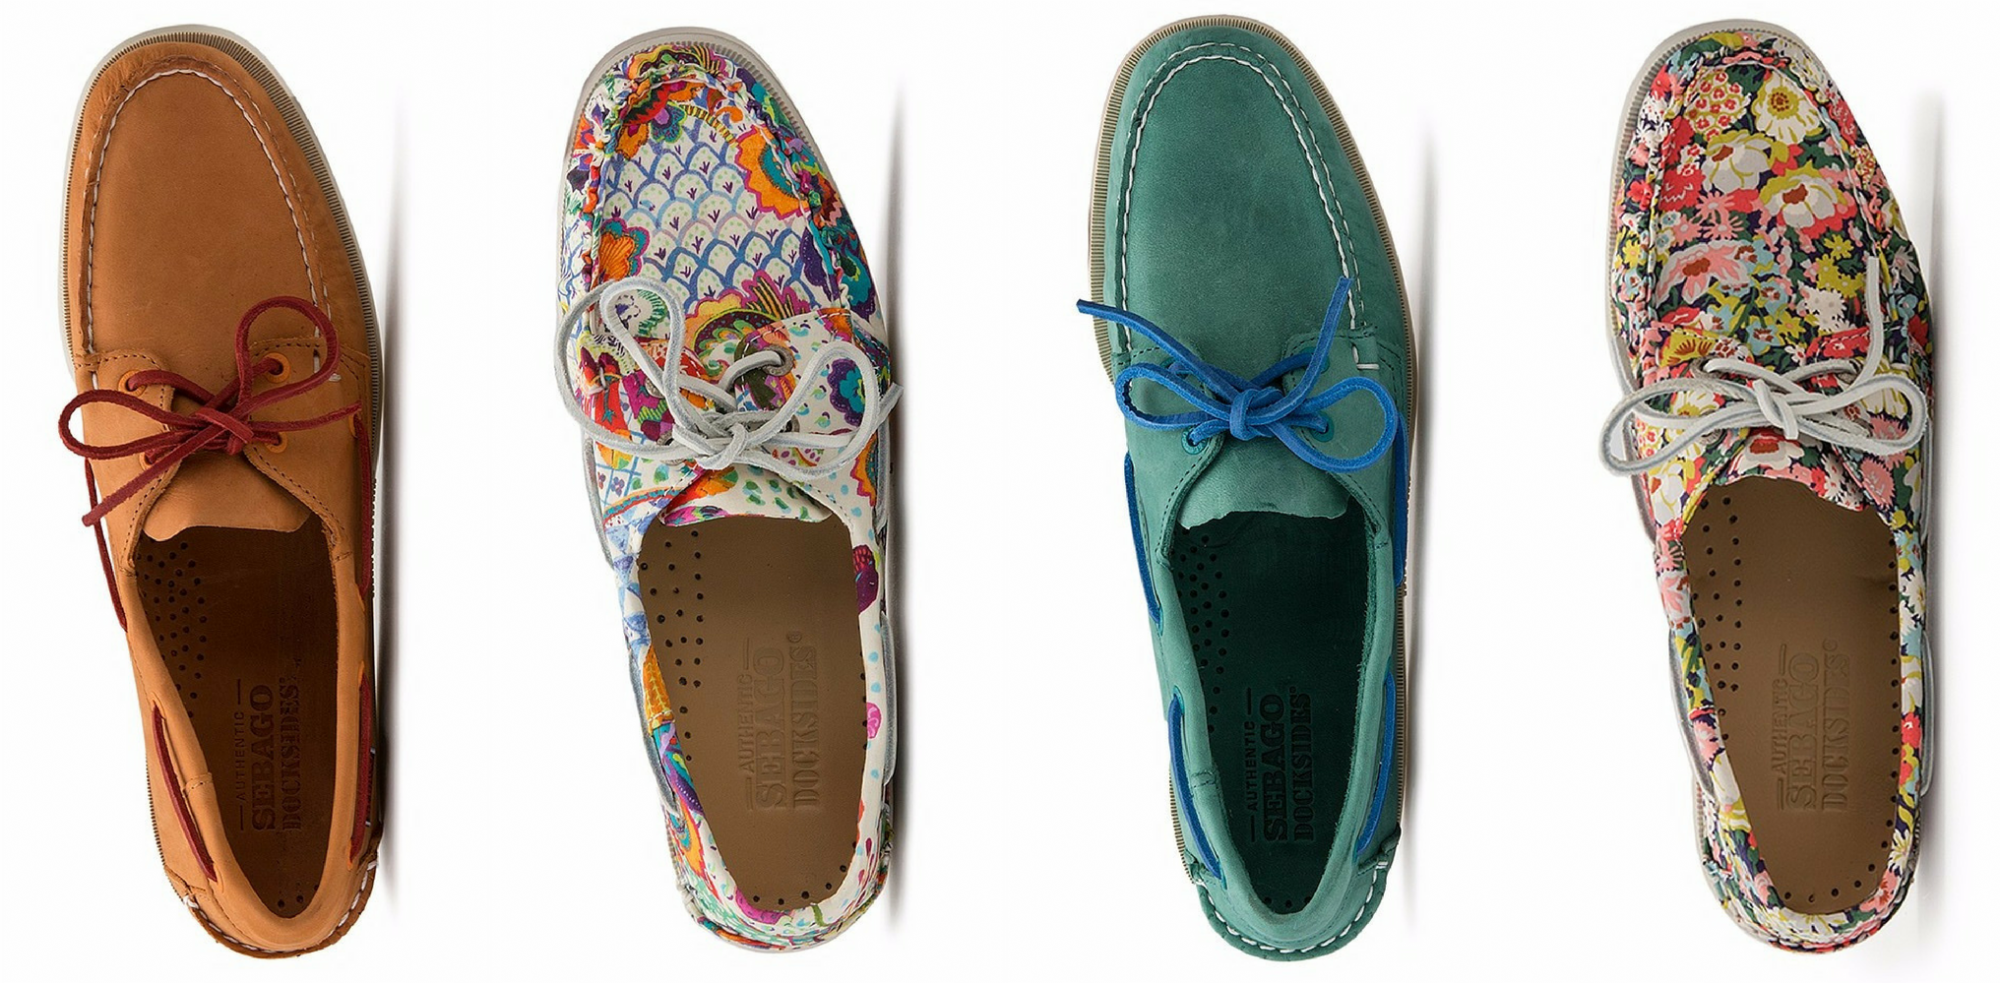 Sebago boat shoes ladies and mens, bala liberty print